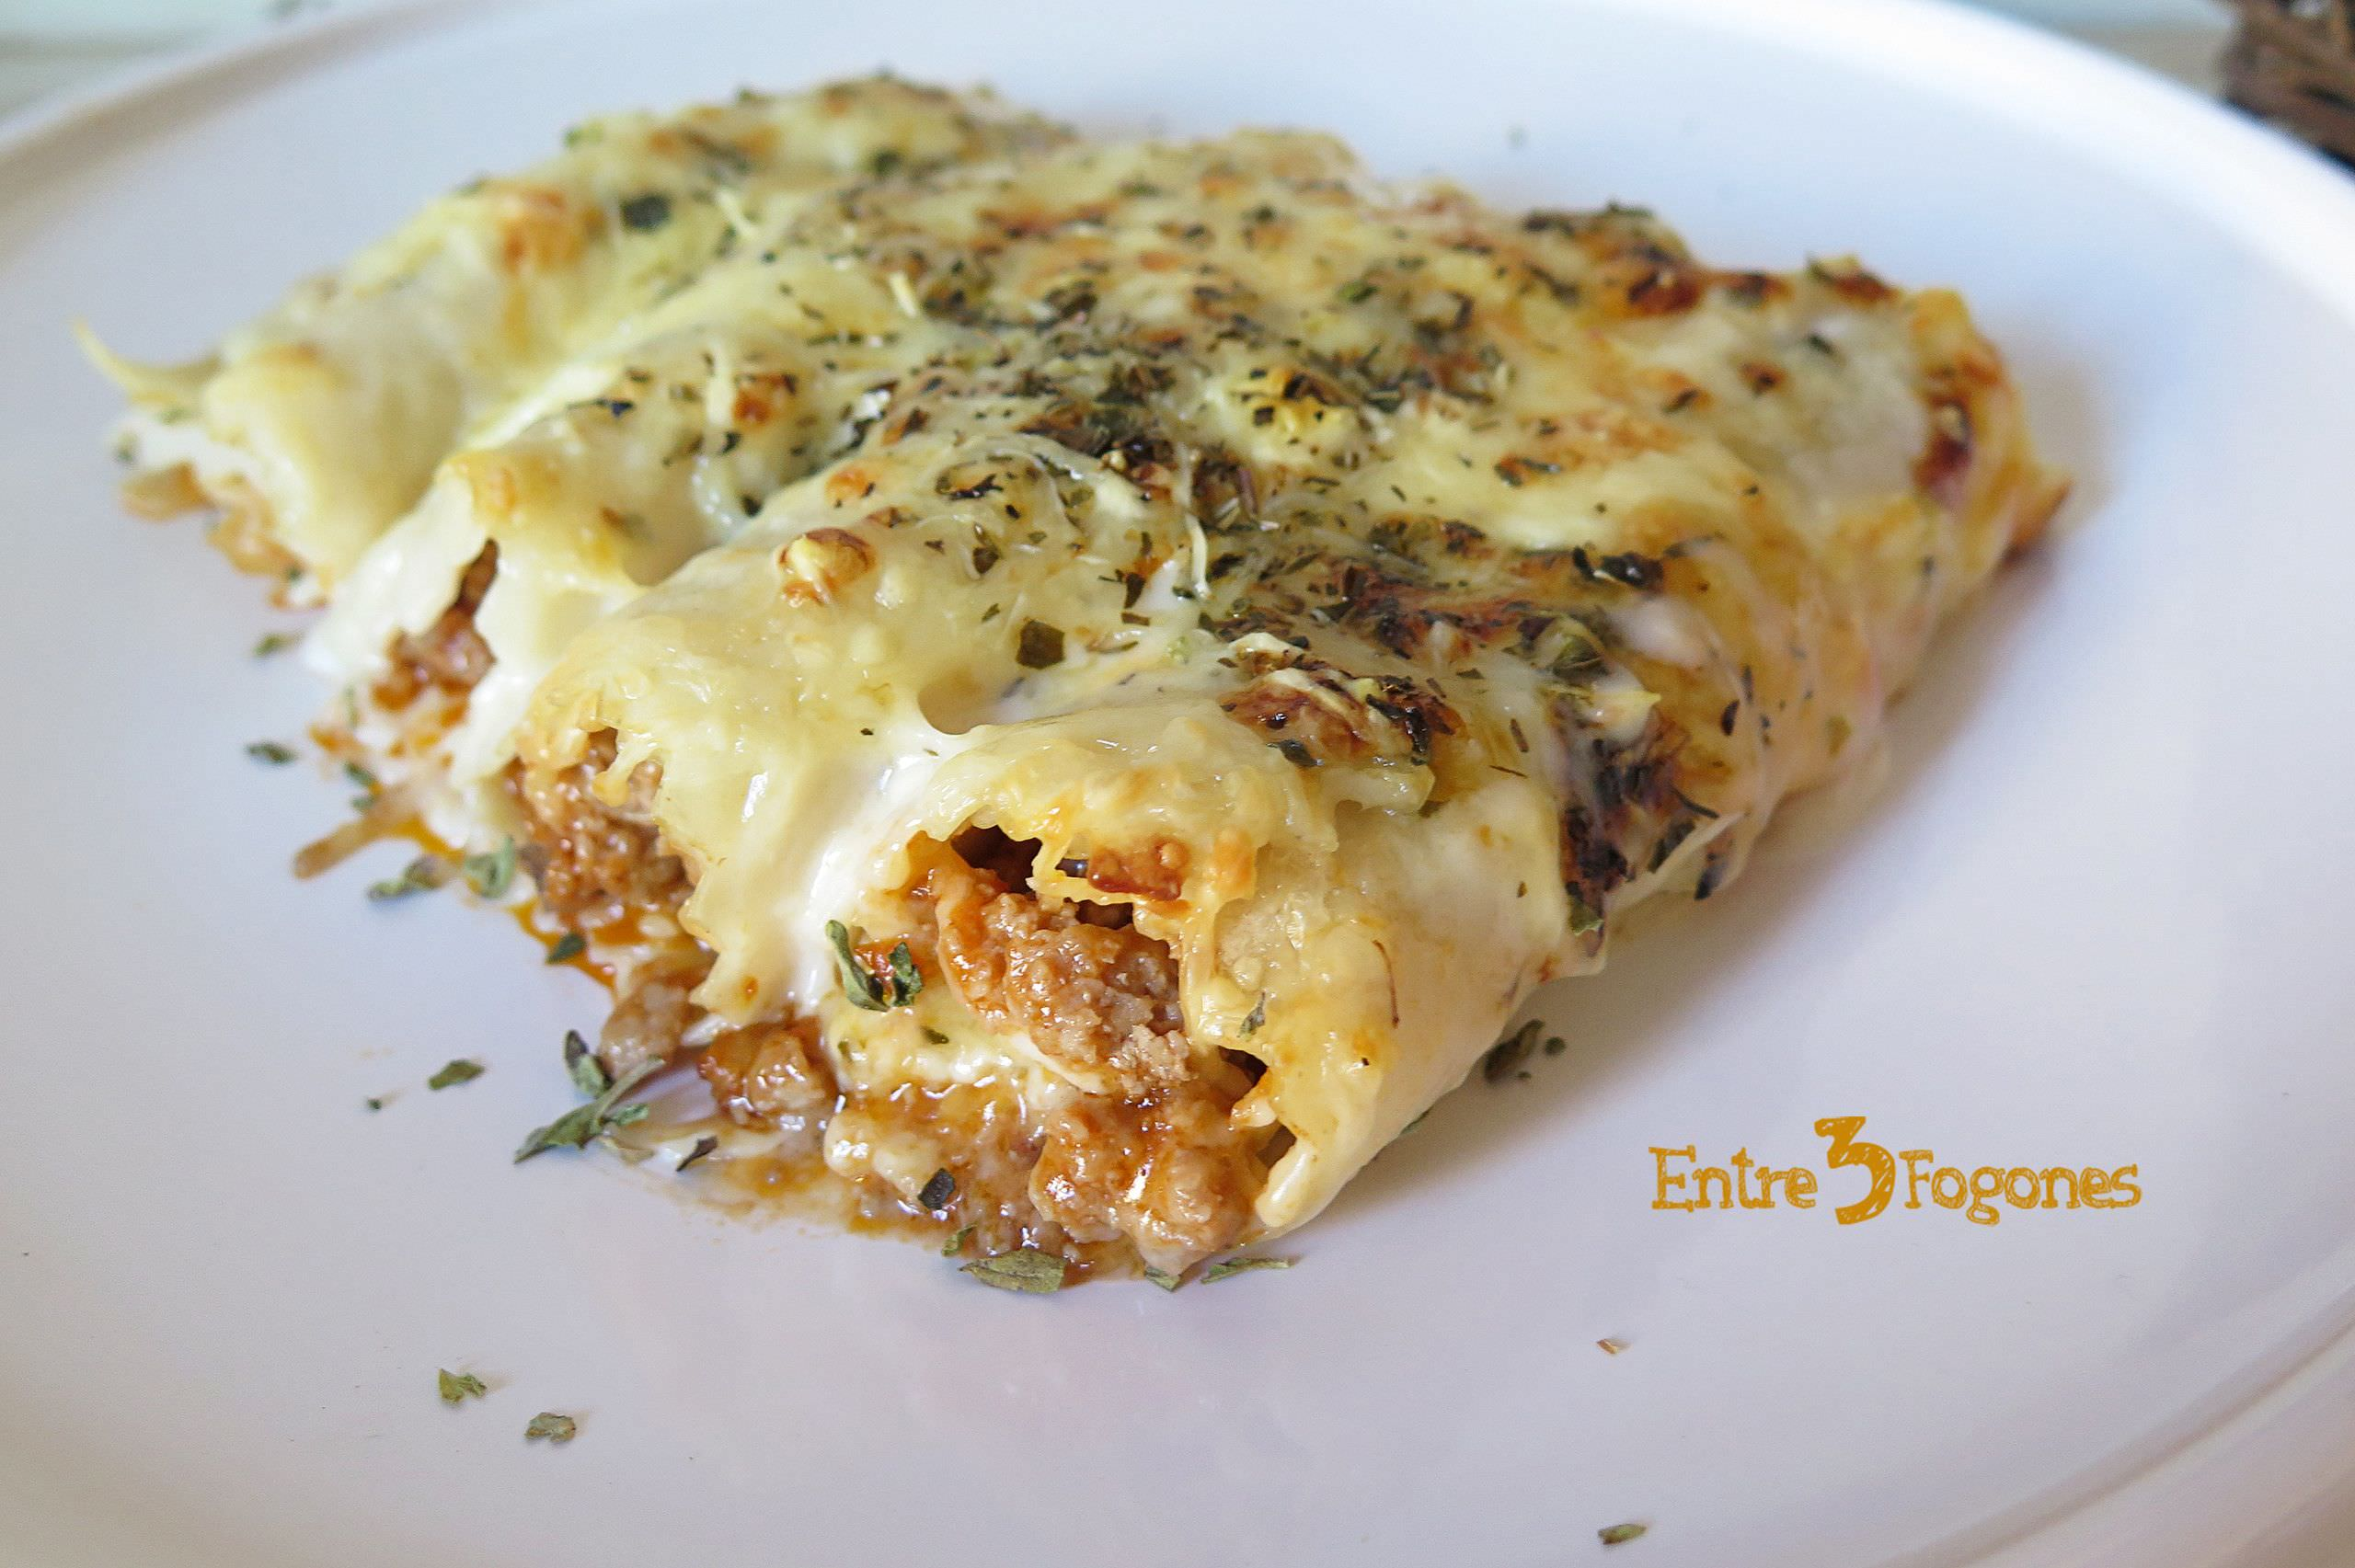 Photo of Canelones de Carne y Foie